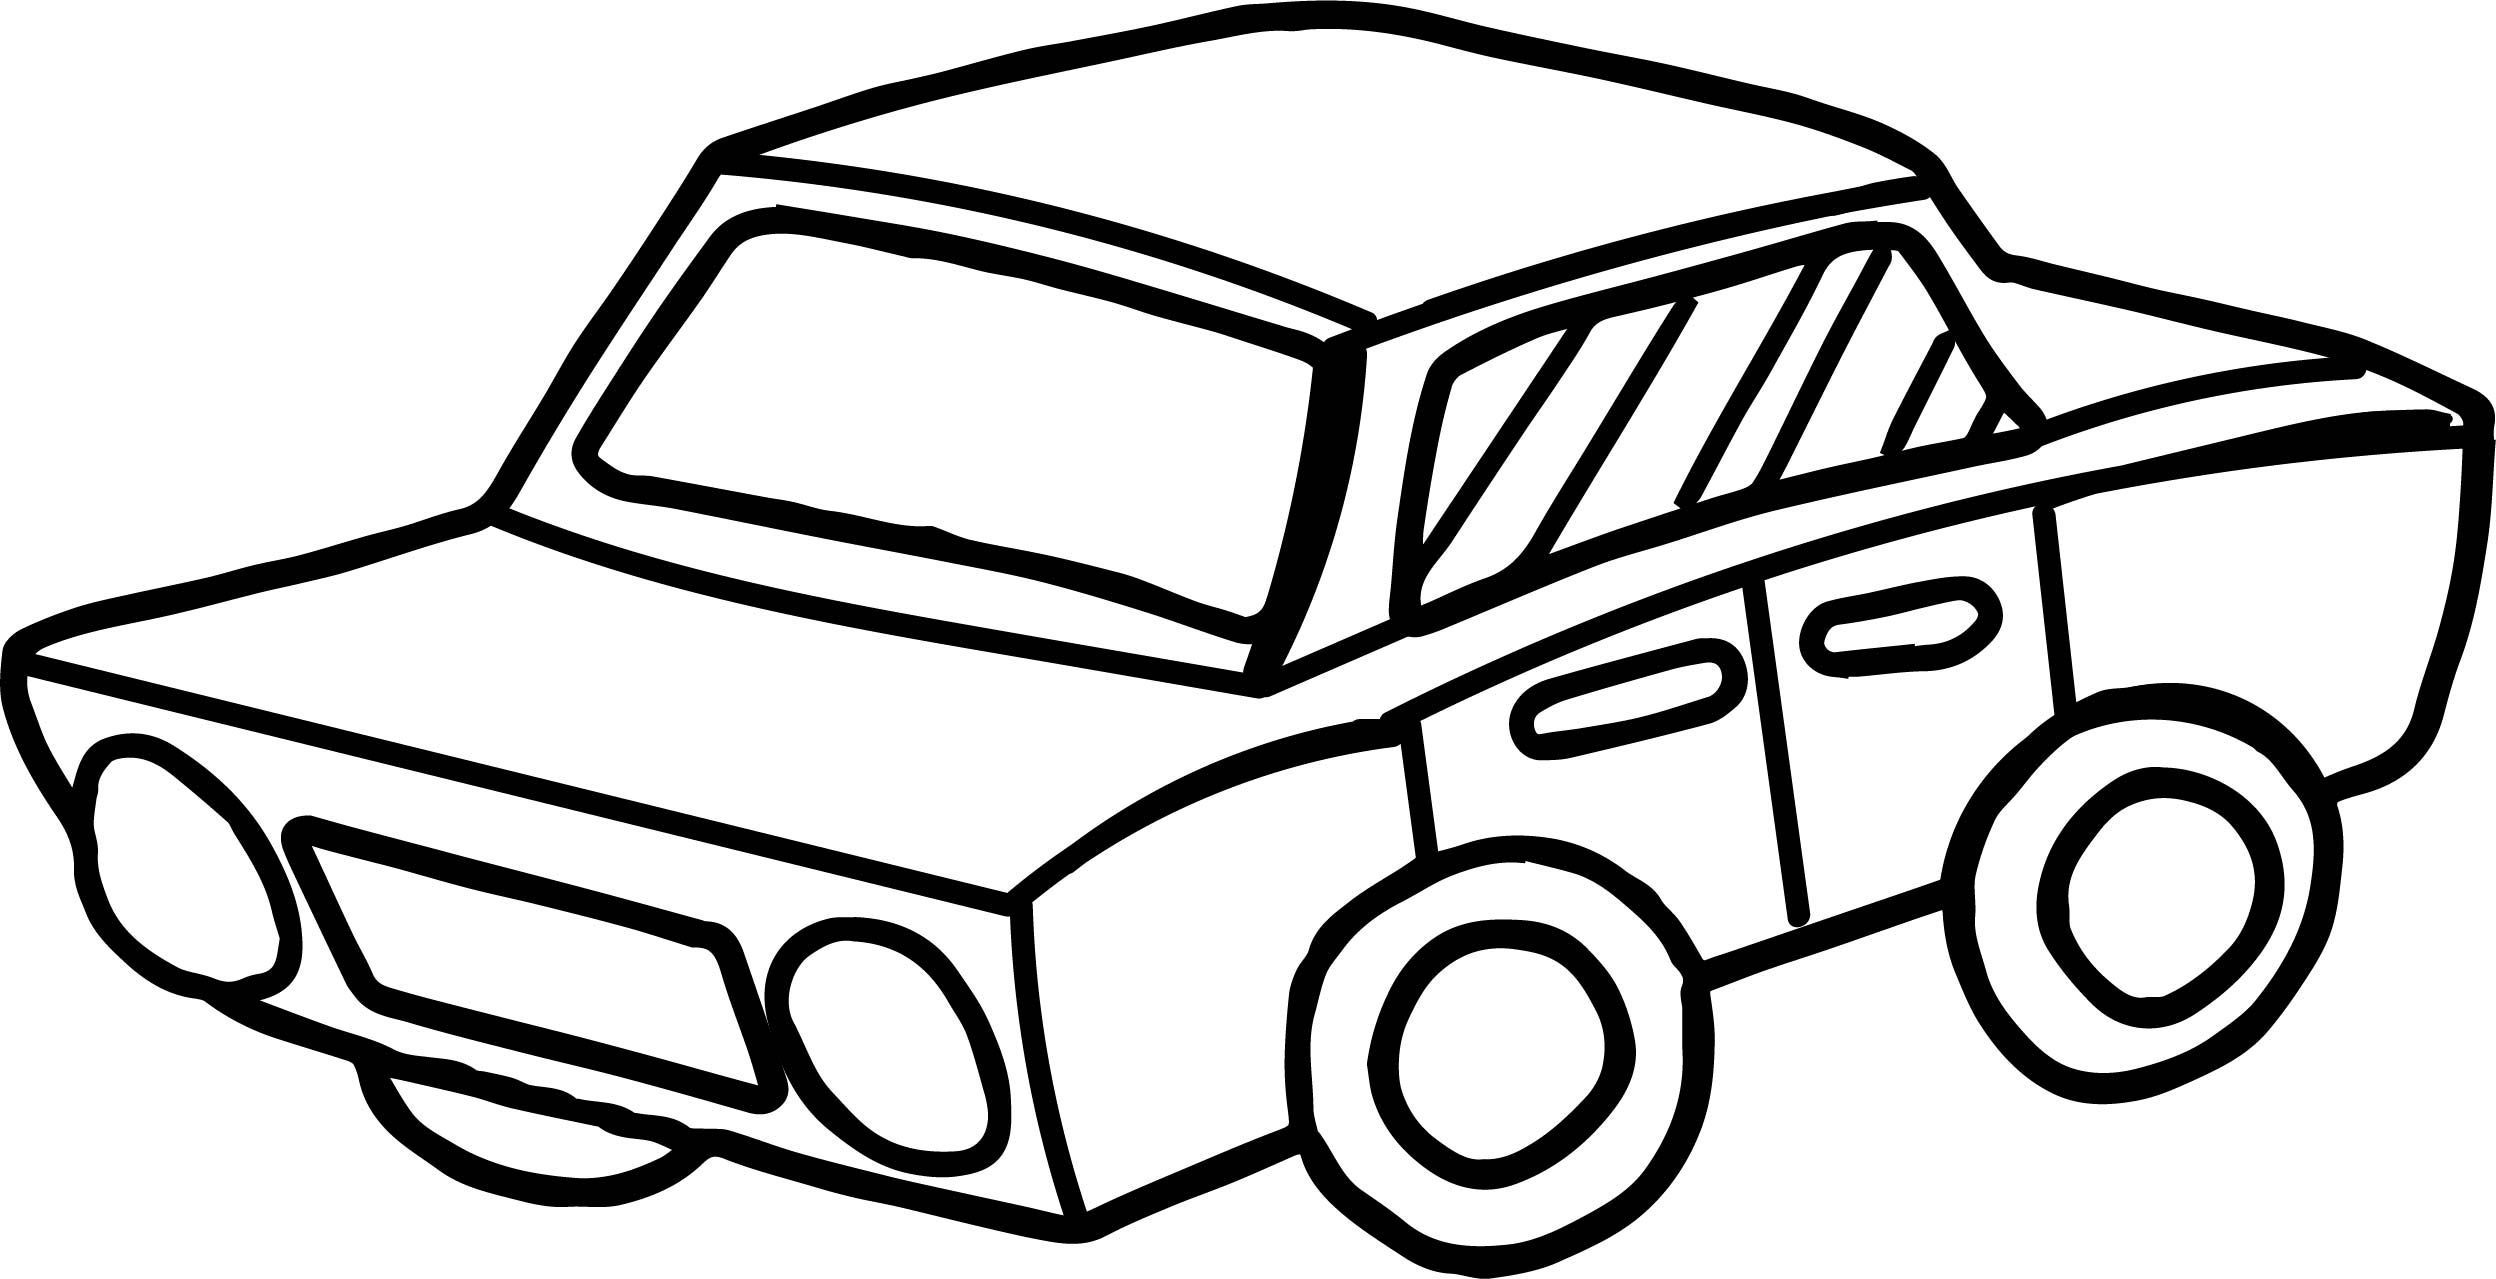 Toy Car Perspective Coloring Page Wecoloringpage